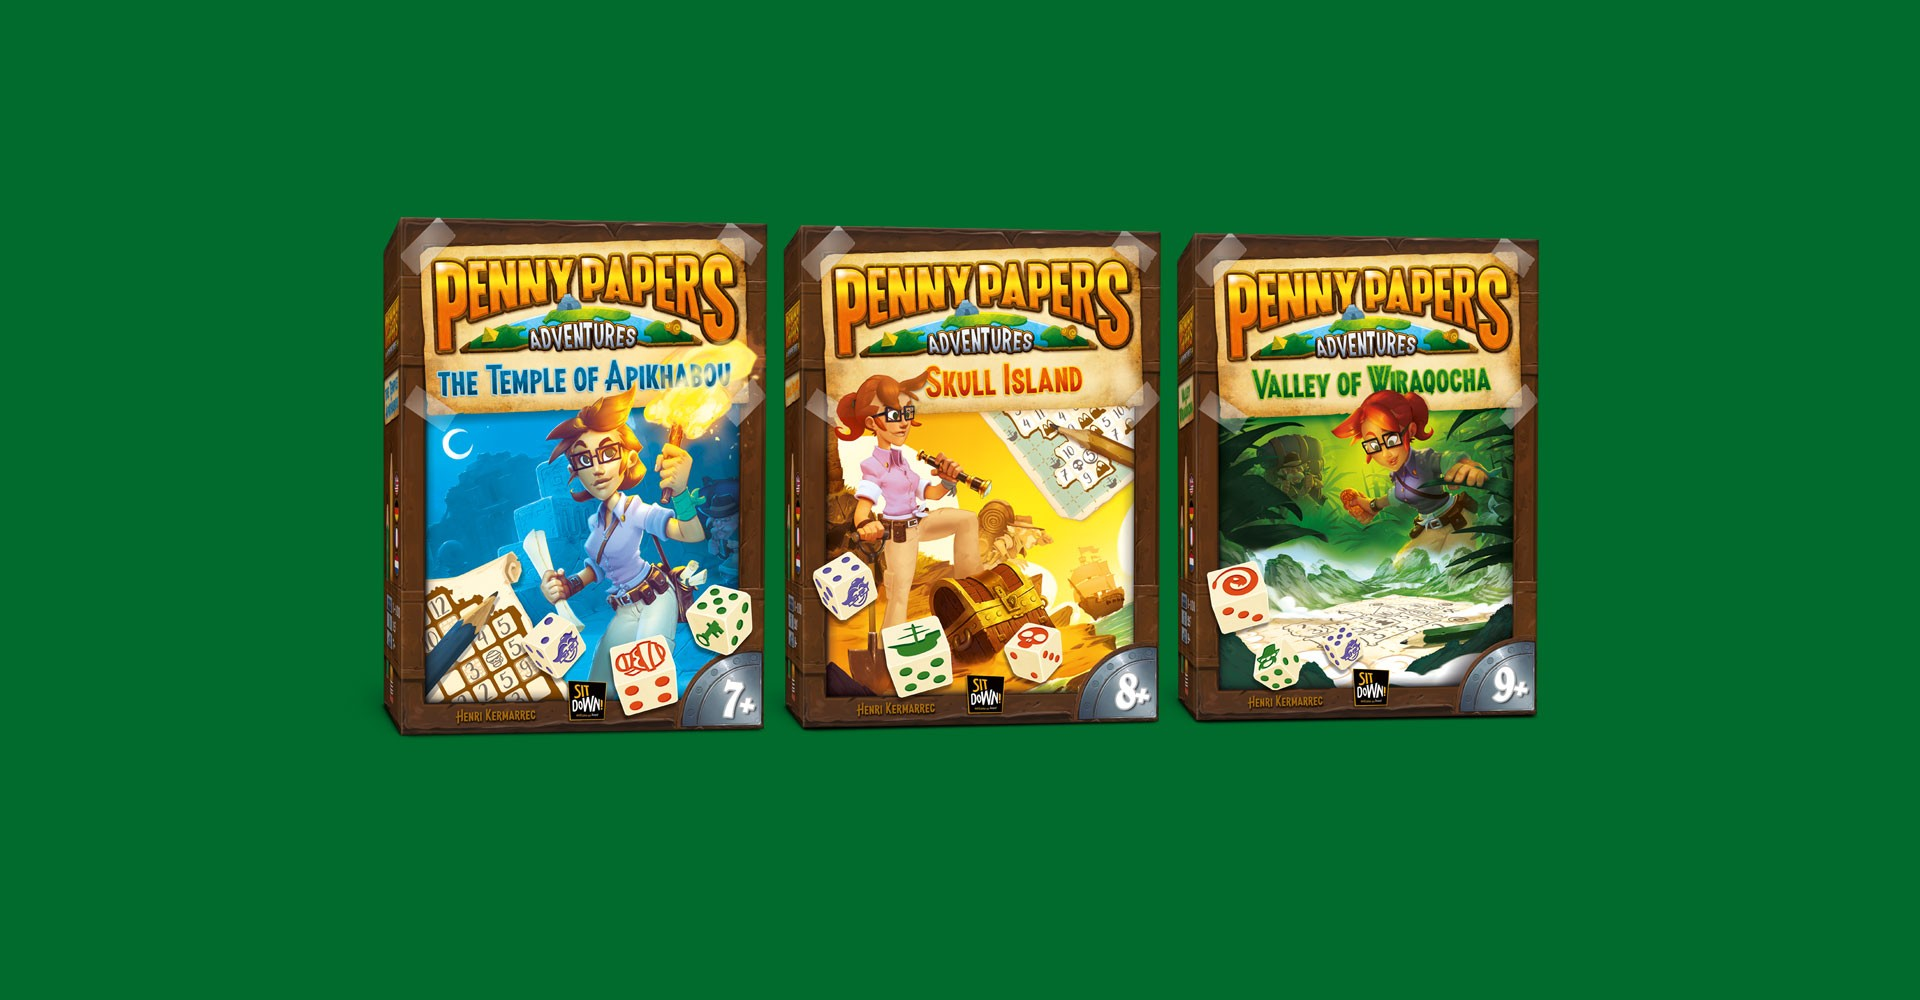 The three games of the Penny Papers Adventures range